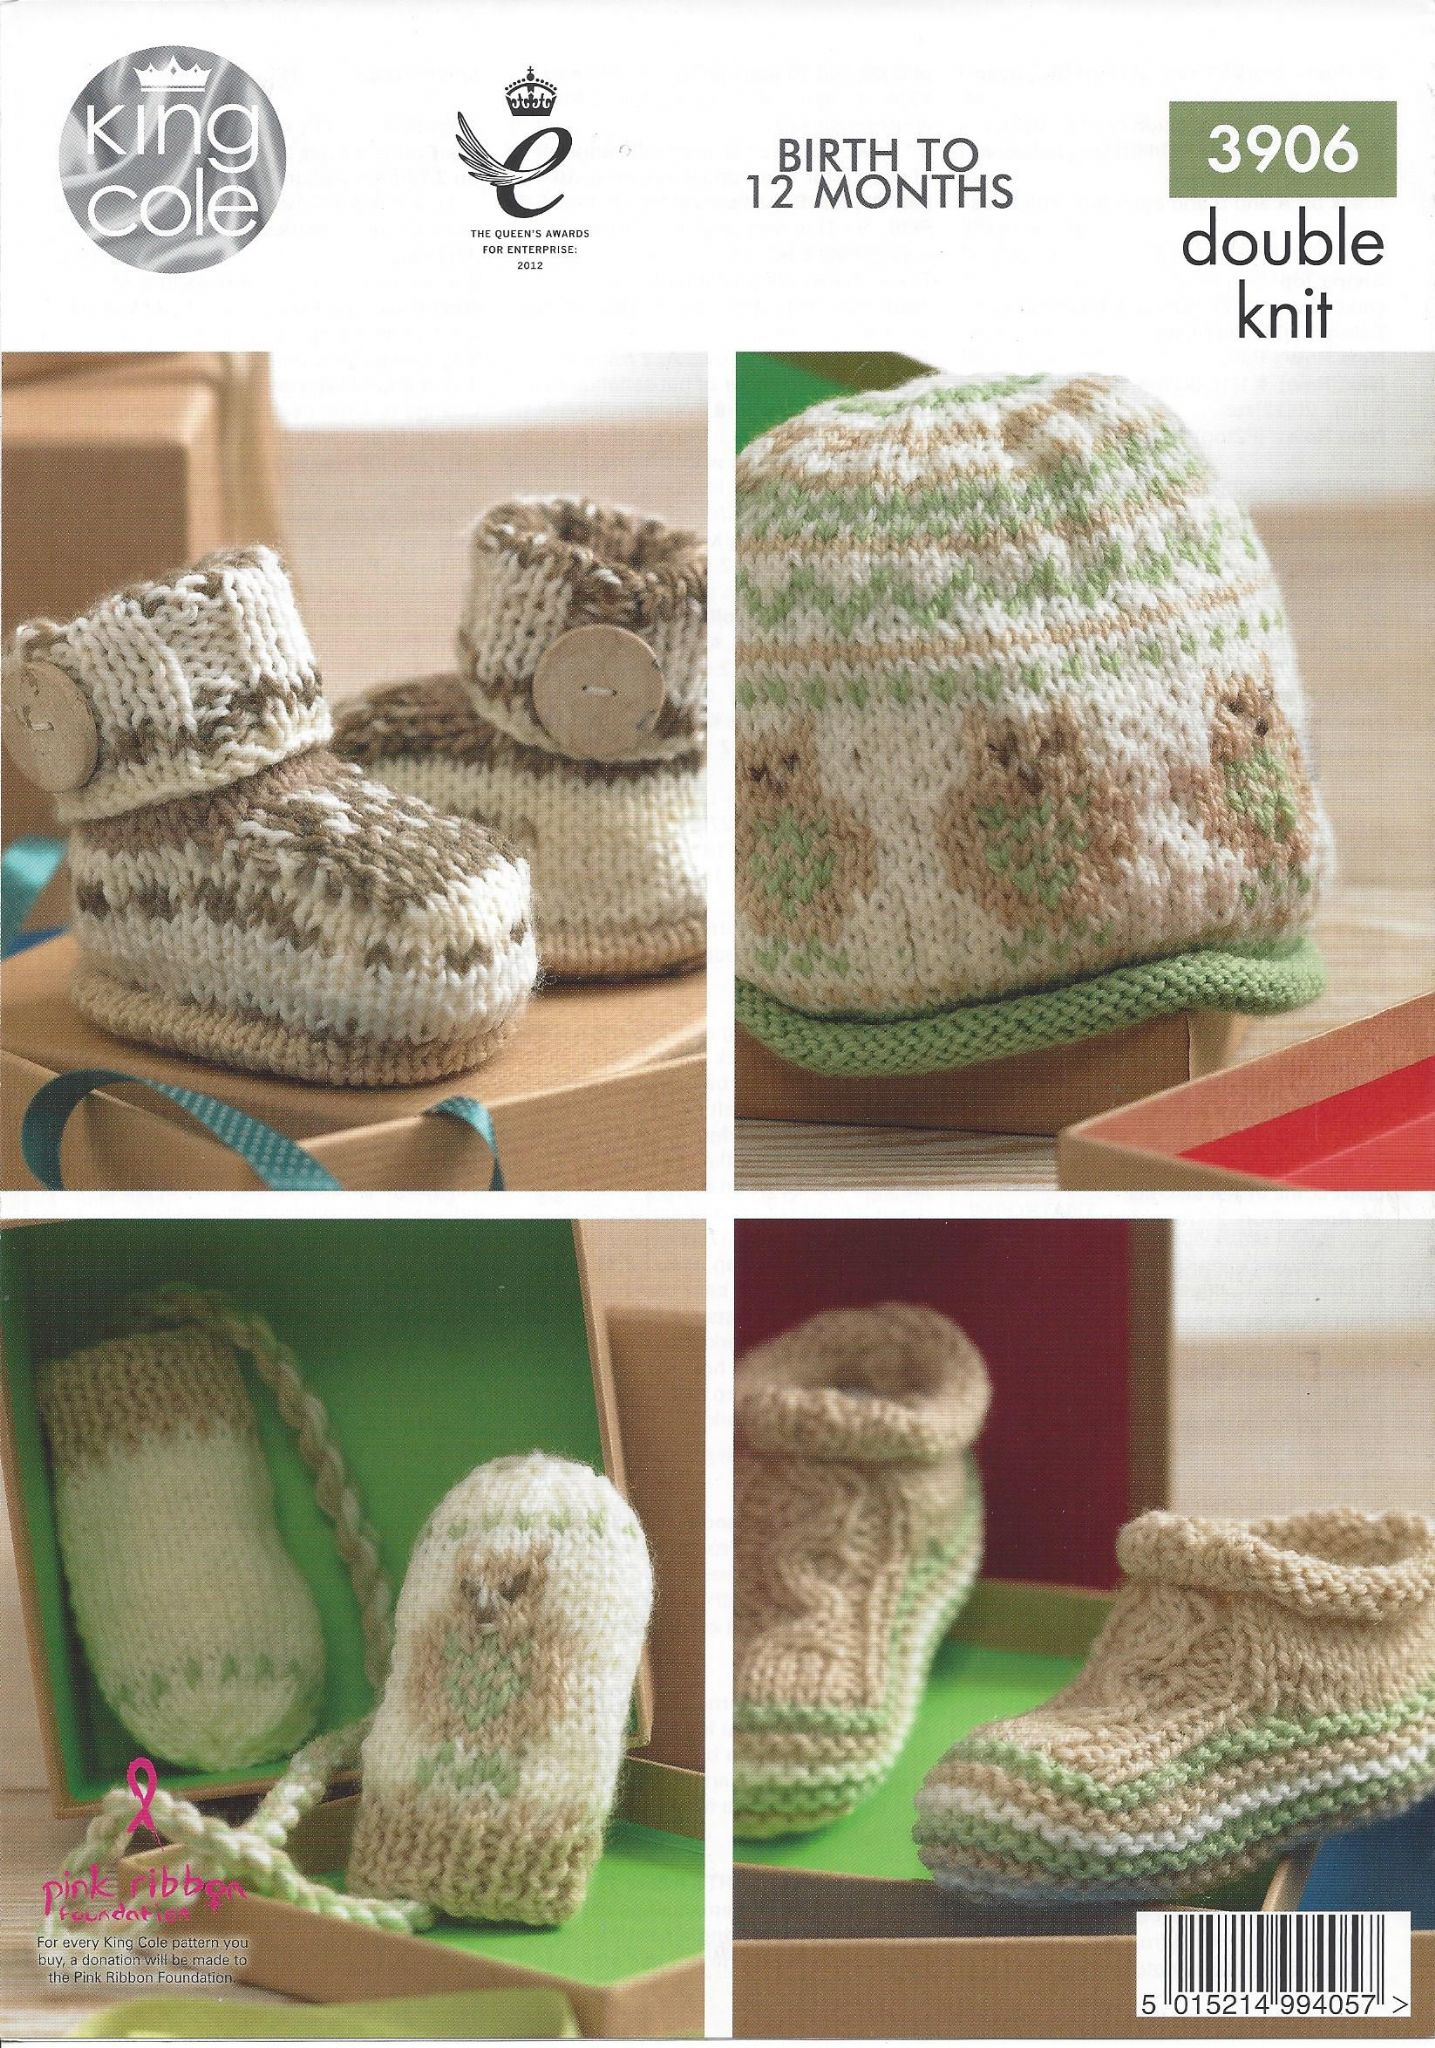 King Cole Baby DK Knitting Pattern - 3906 Baby Accessories